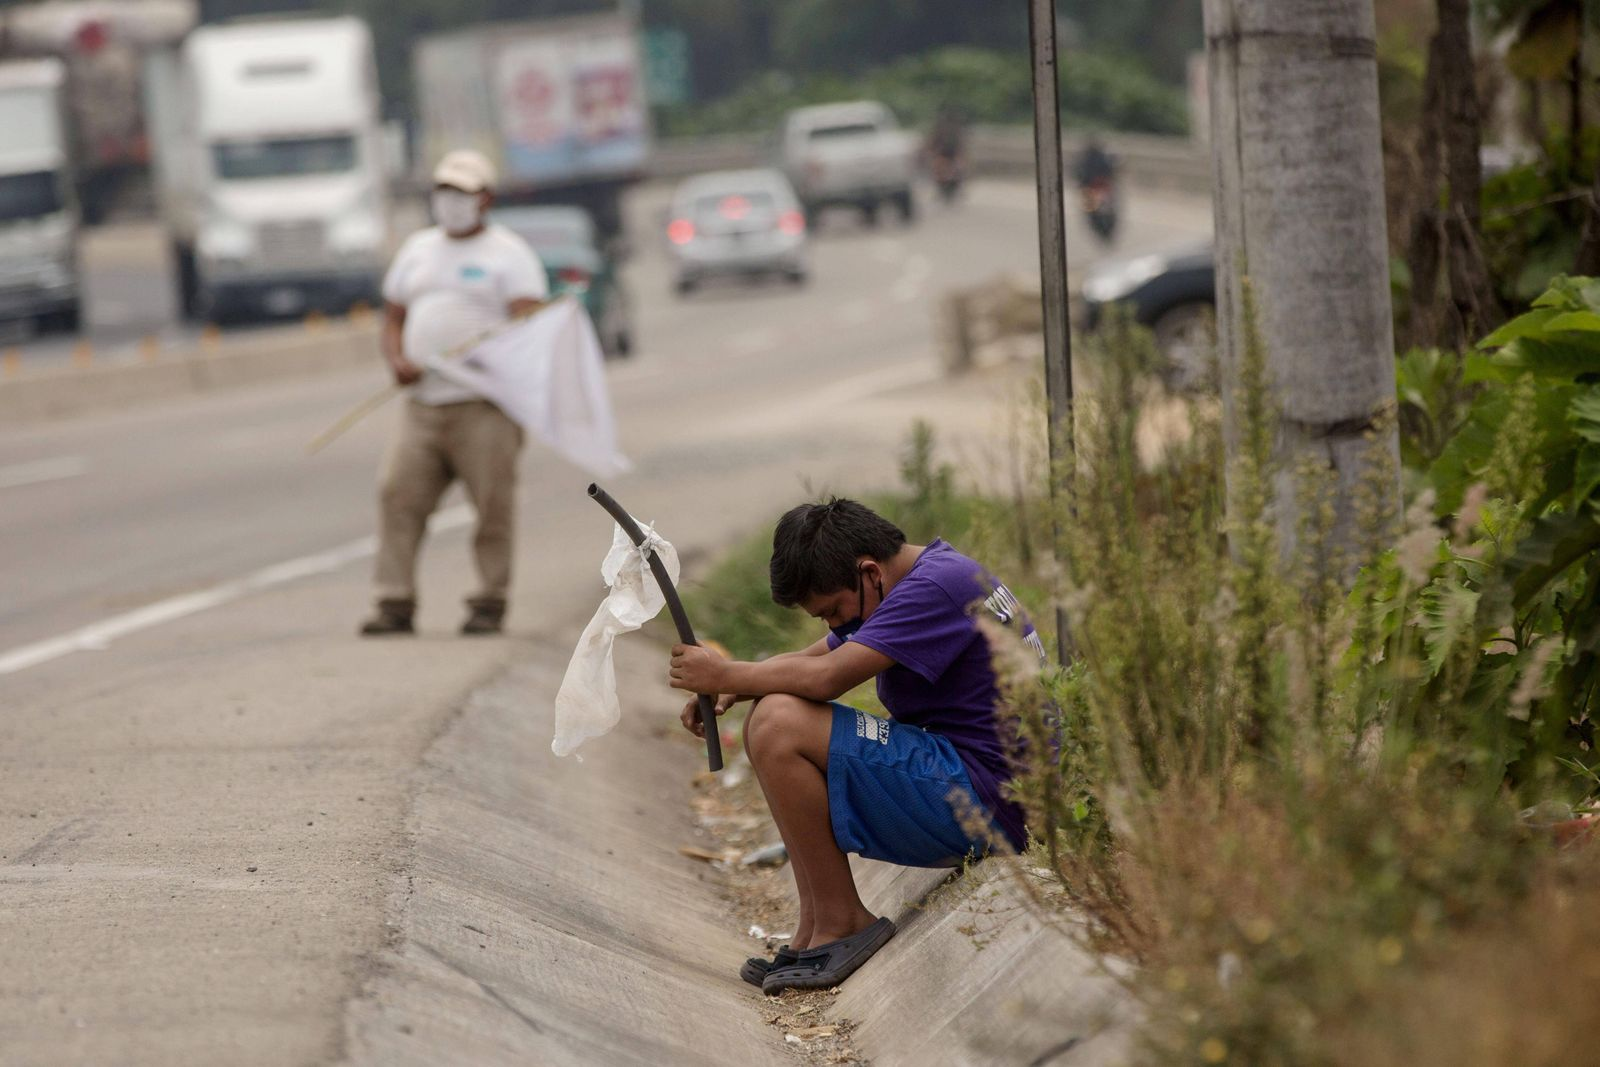 A boy waves a white flag to ask for help due to hunger, in El Tejar, Guatemala, 29 April 2020. Guatemala is on its fift